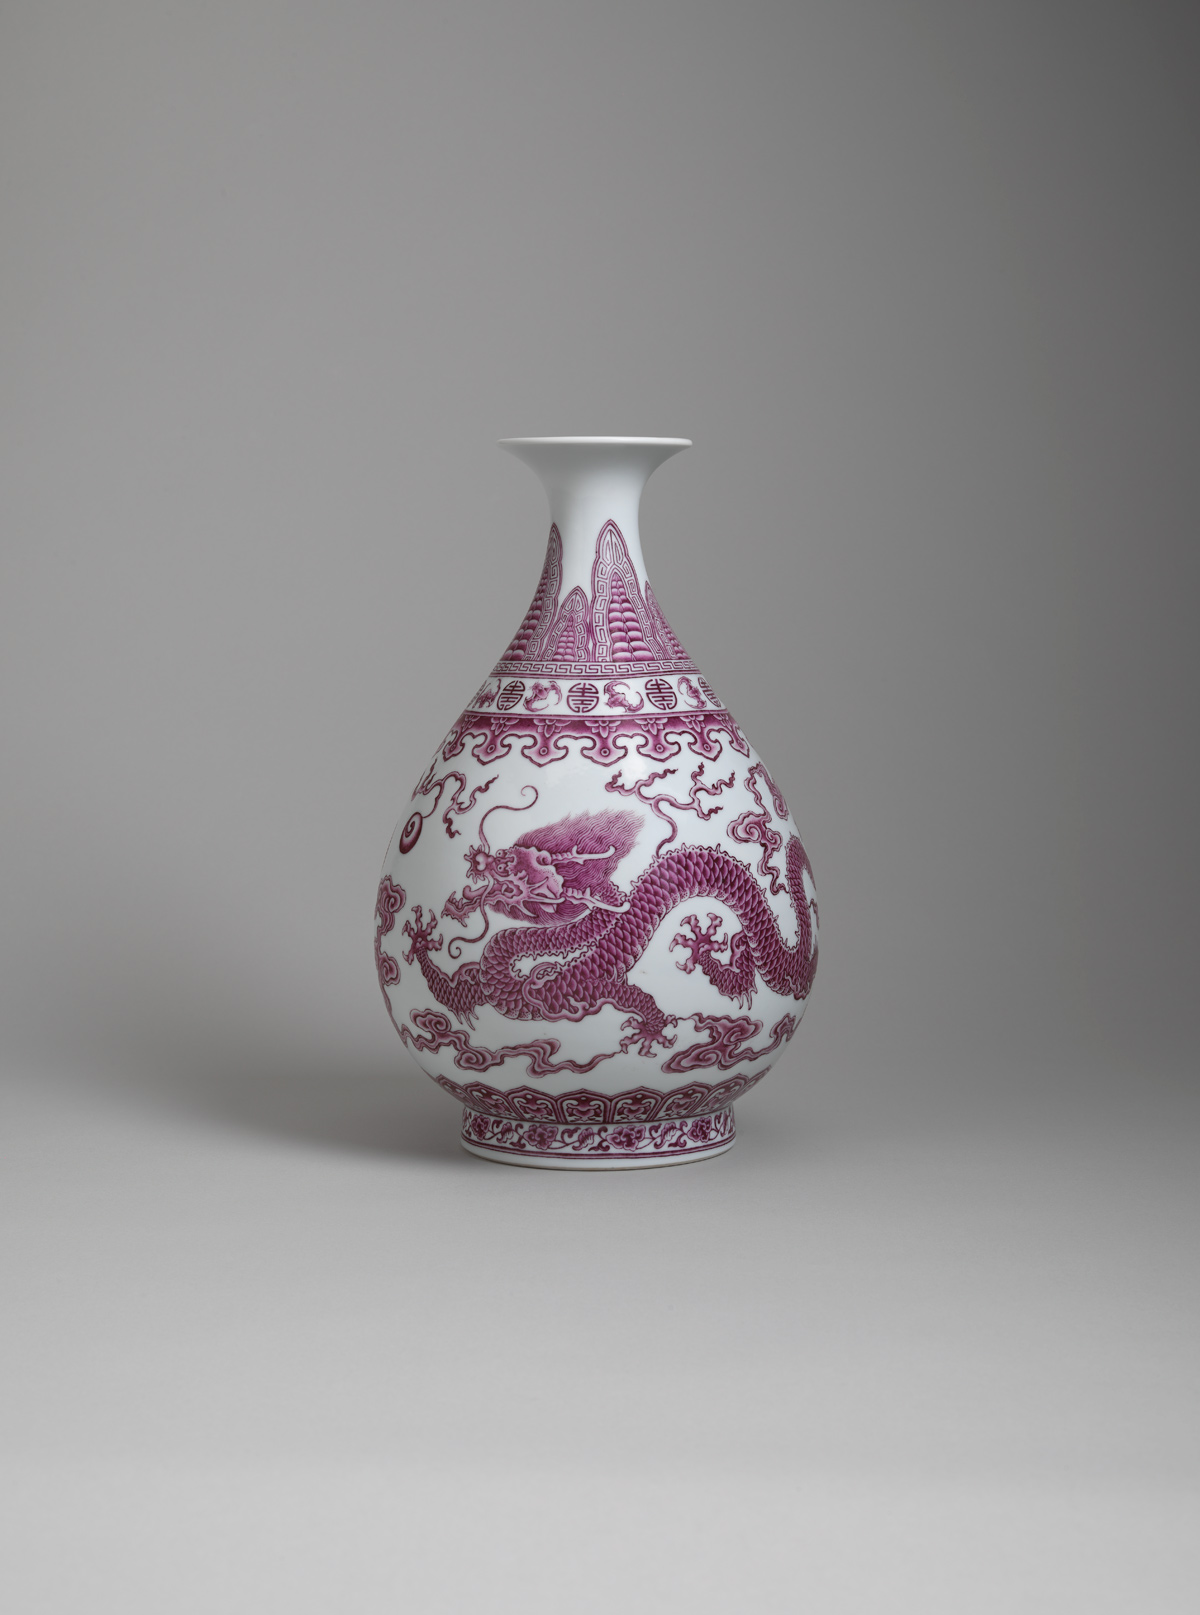 View Falangcai porcelain pear-shaped vase (yuhuchun ping)